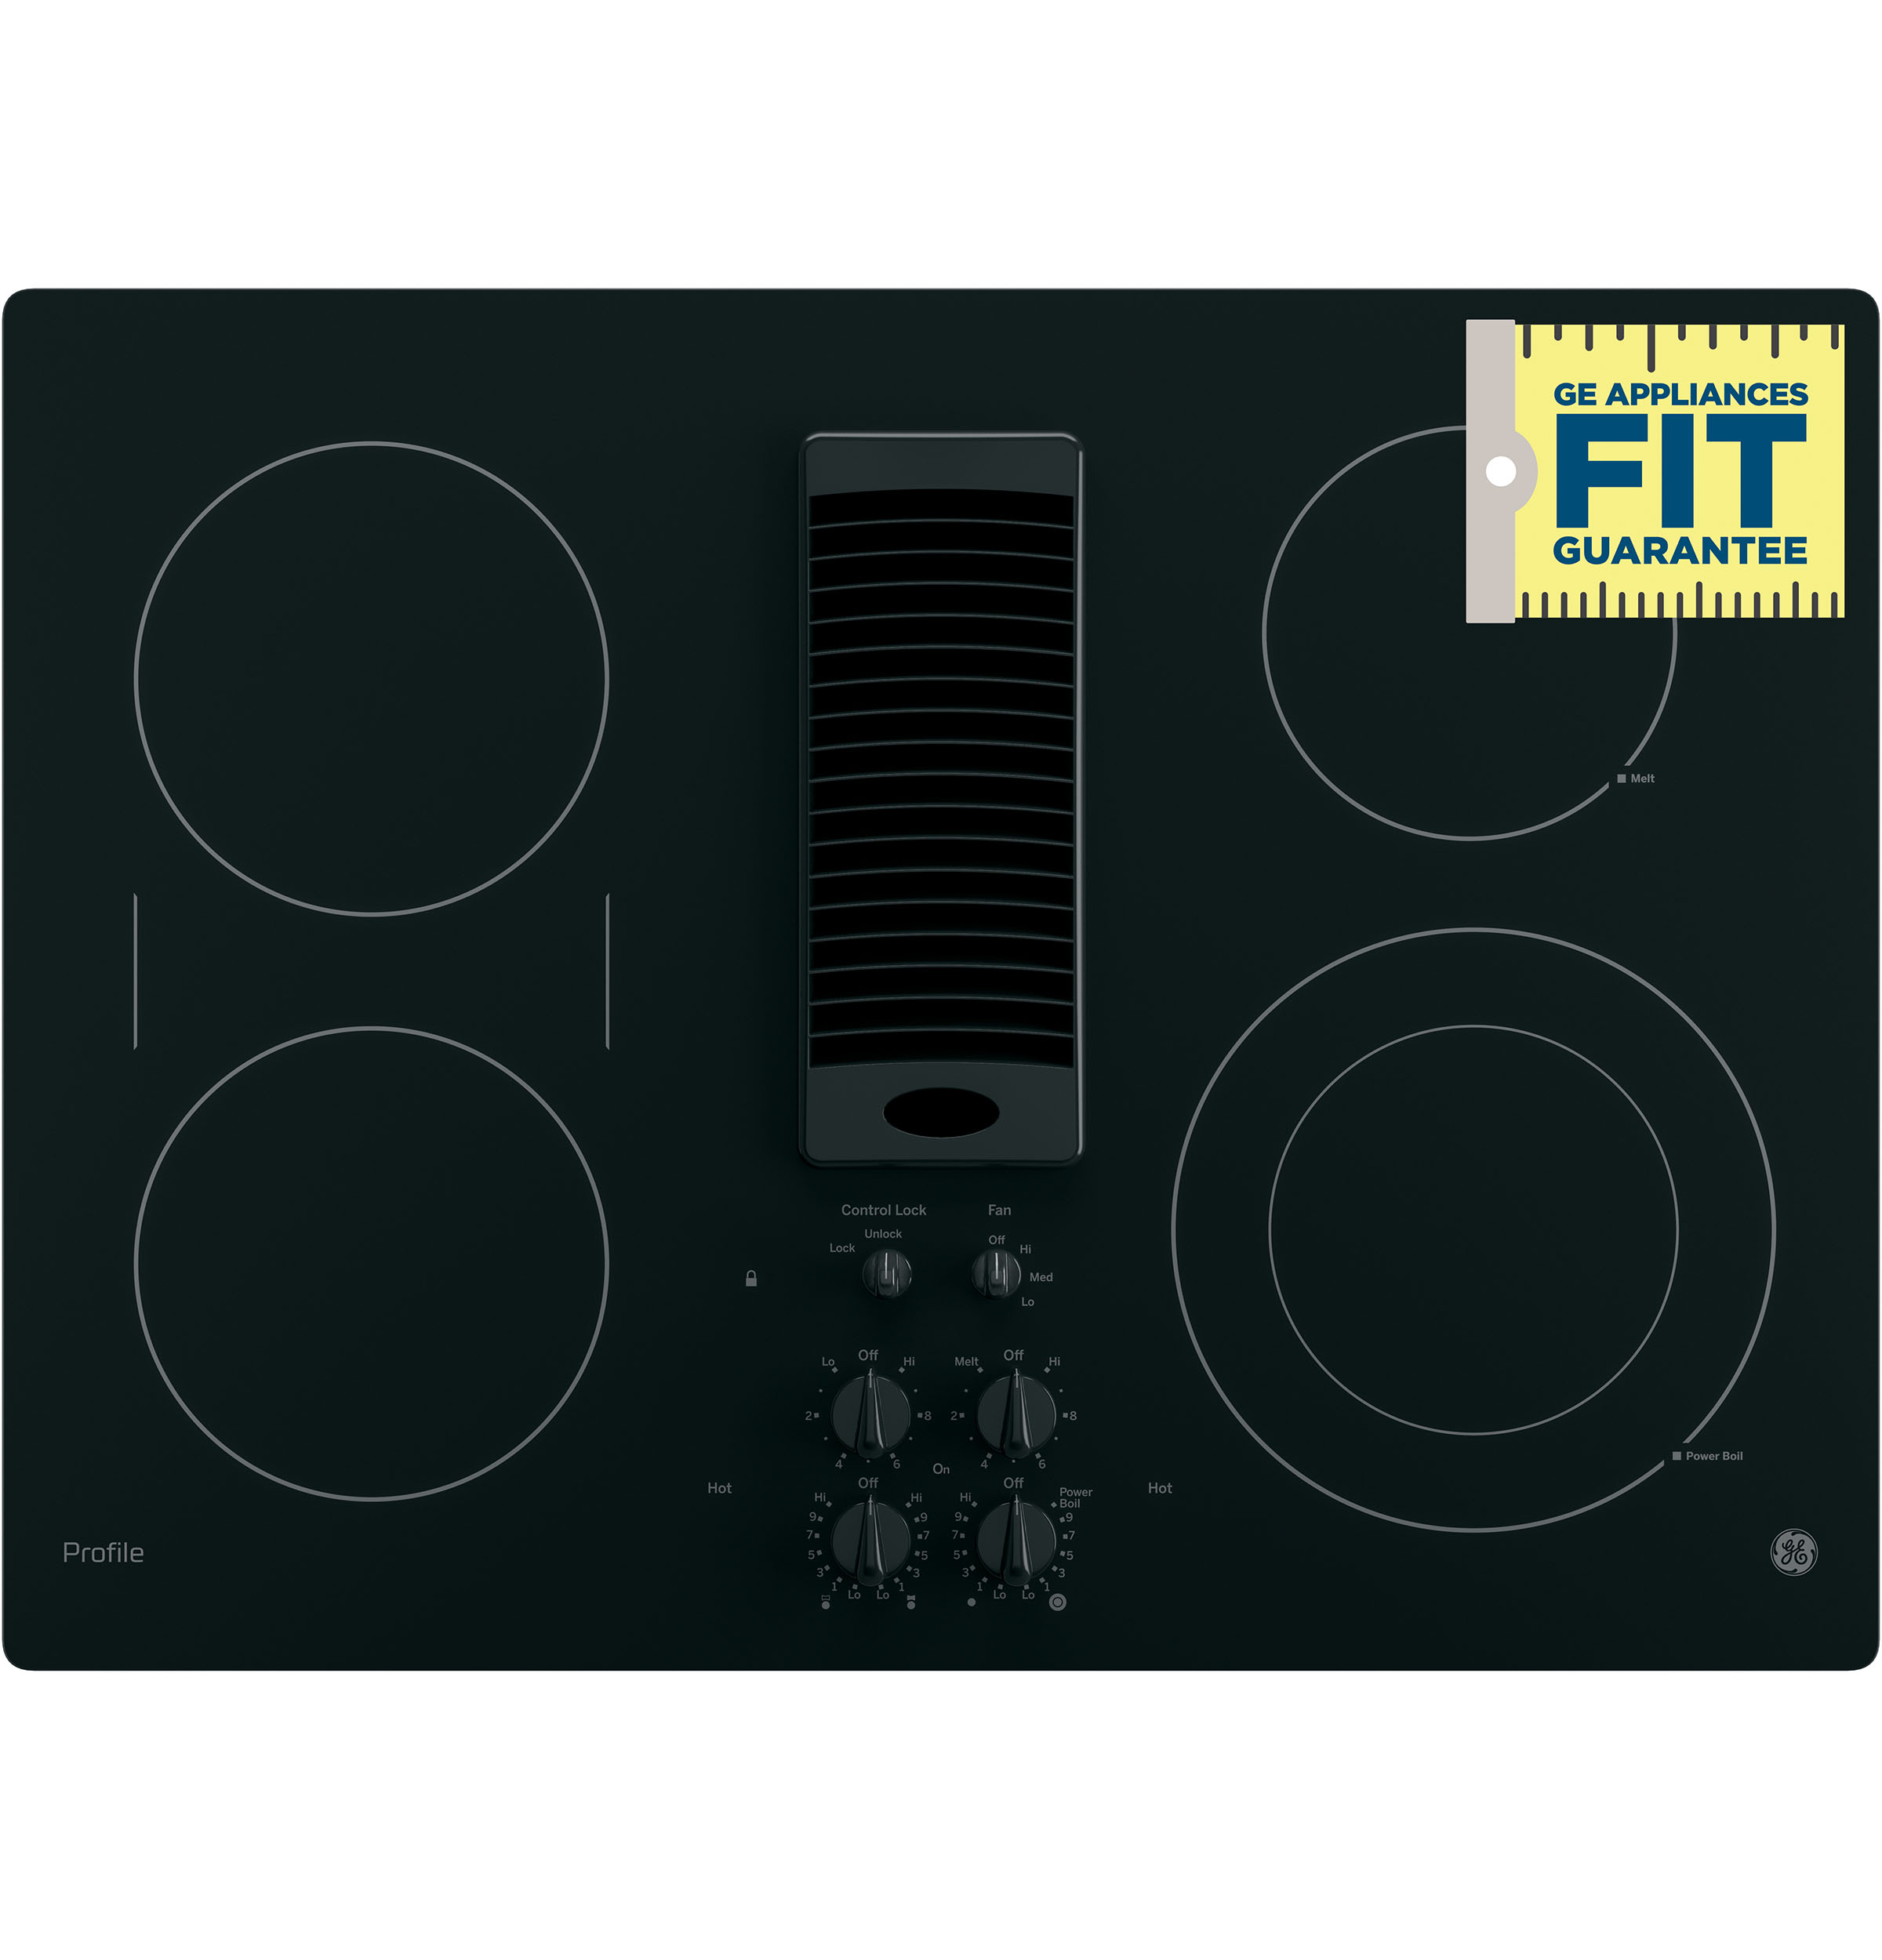 9/6 Inch Power Boil Bridge Element and 3-Speed Downdraft Exhaust System GE PP9830TJWW 30 Inch Smoothtop Electric Cooktop with 4 Burners